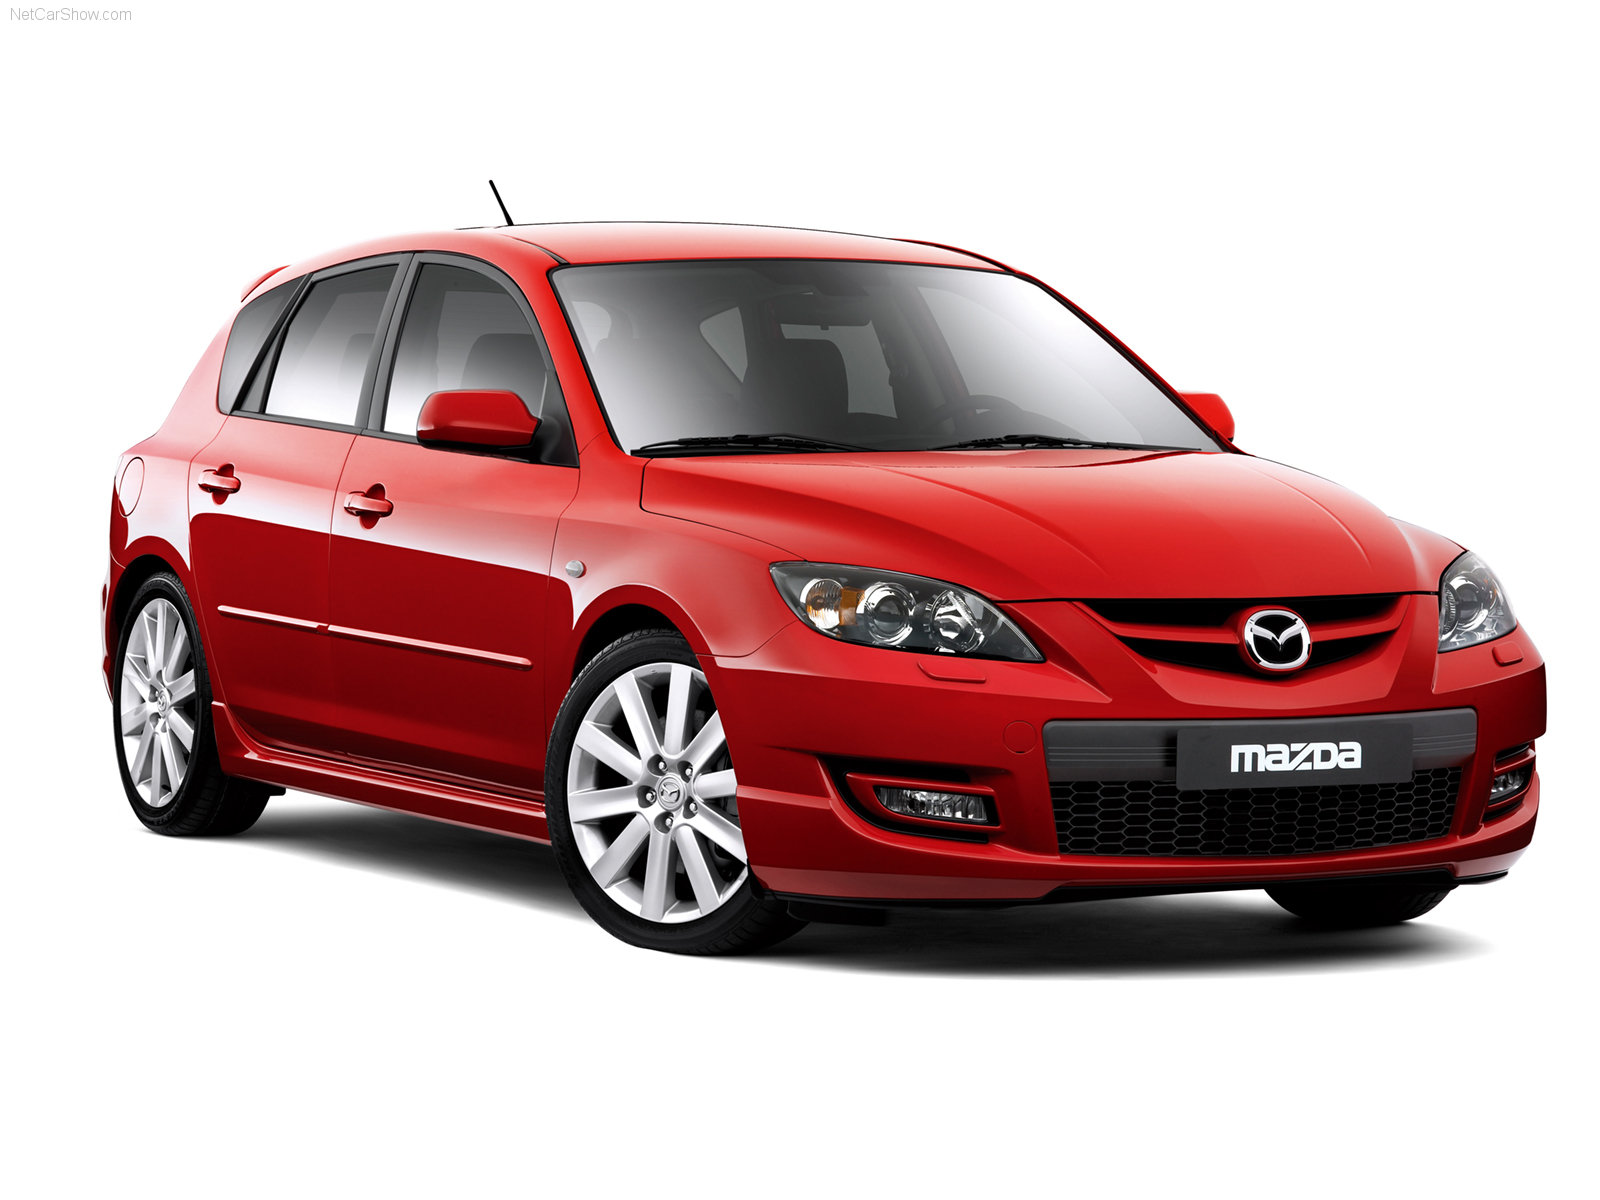 mazda 3 mps essais fiabilit avis photos prix. Black Bedroom Furniture Sets. Home Design Ideas